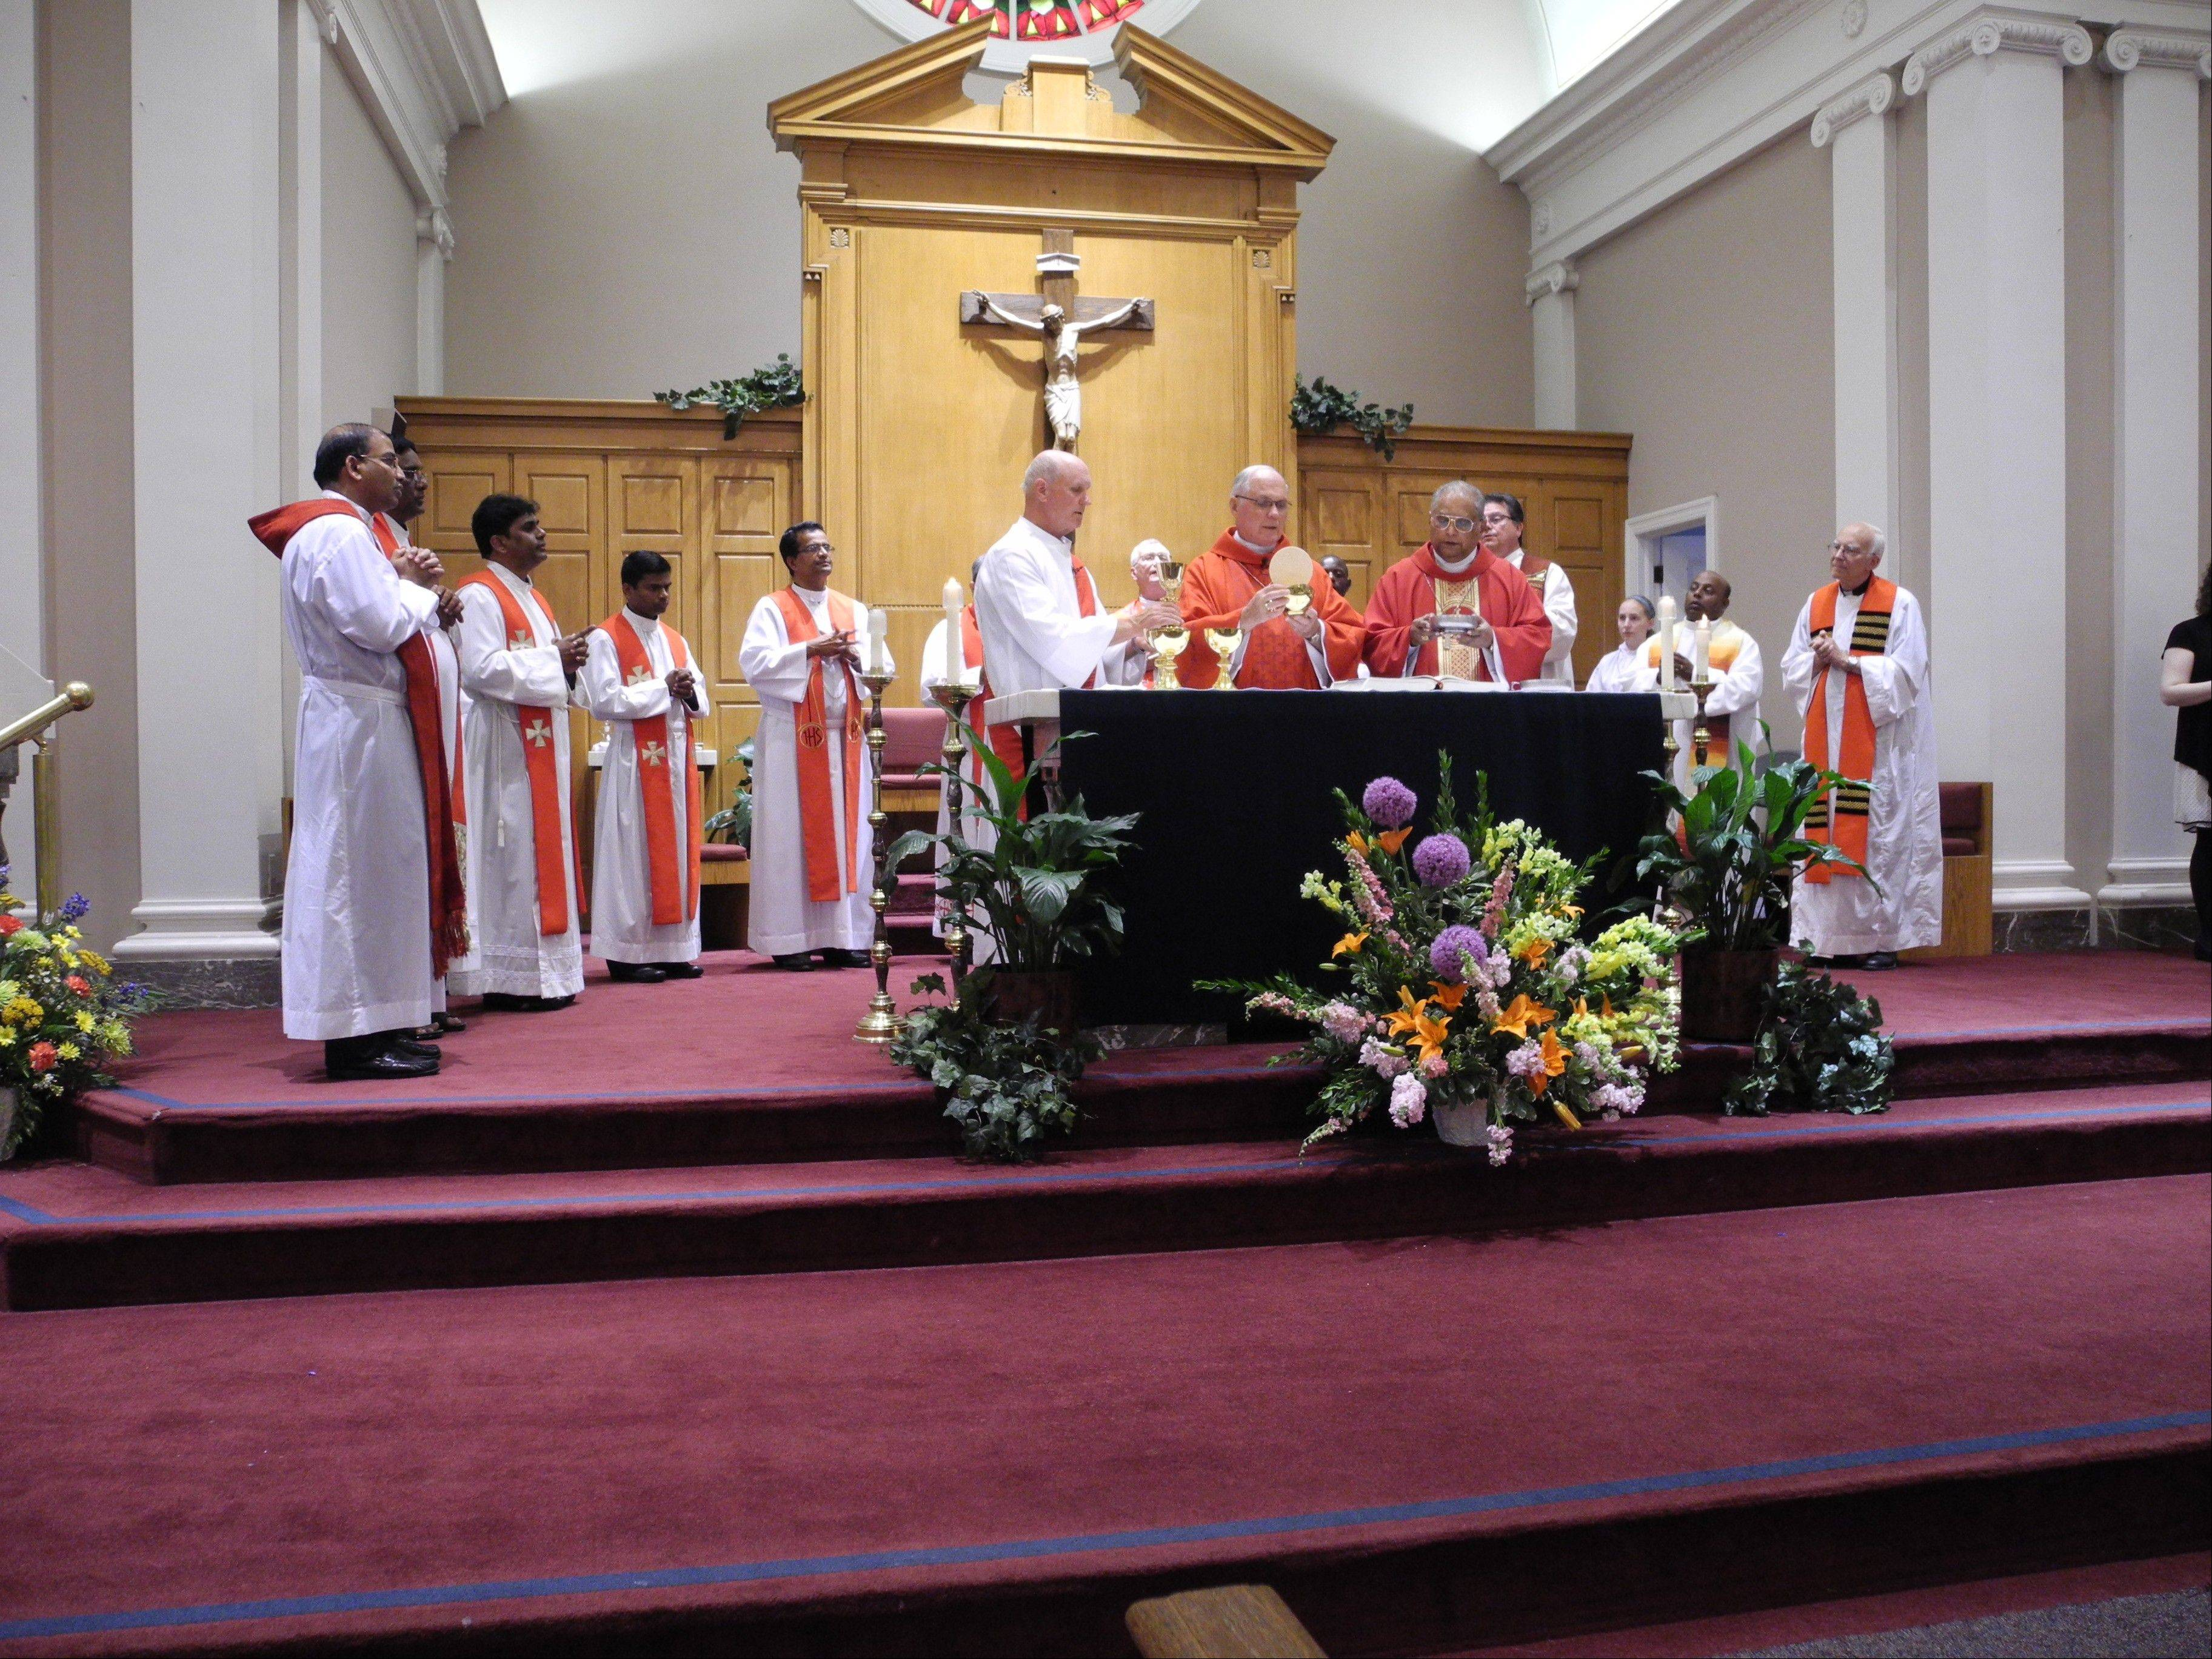 Most Rev. George Rassas, auxiliary bishop of the Archdiocese of Chicago and Most Rev. Gali Bali, bishop of Guntur, India, were celebrants of a Mass at St. James Catholic Church in Arlington Heights to mark FCN's 10th anniversary.